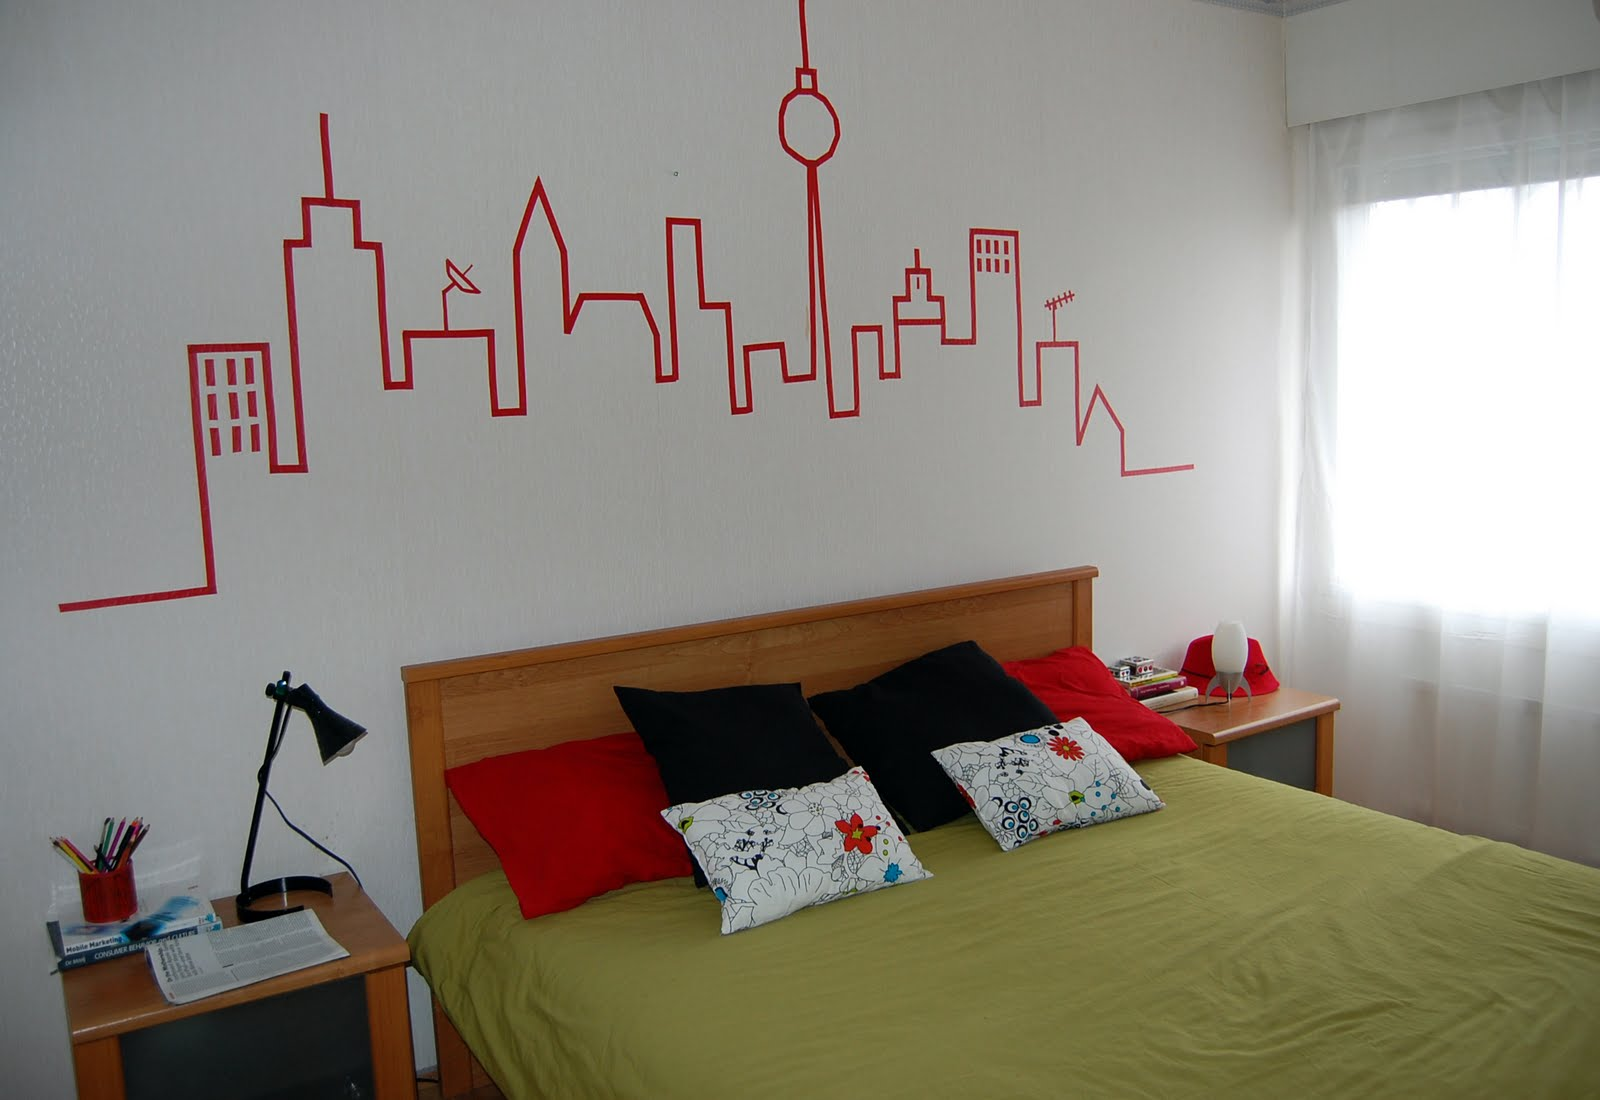 Naifandtastic decoraci n craft hecho a mano - Como decorar pared con fotos ...